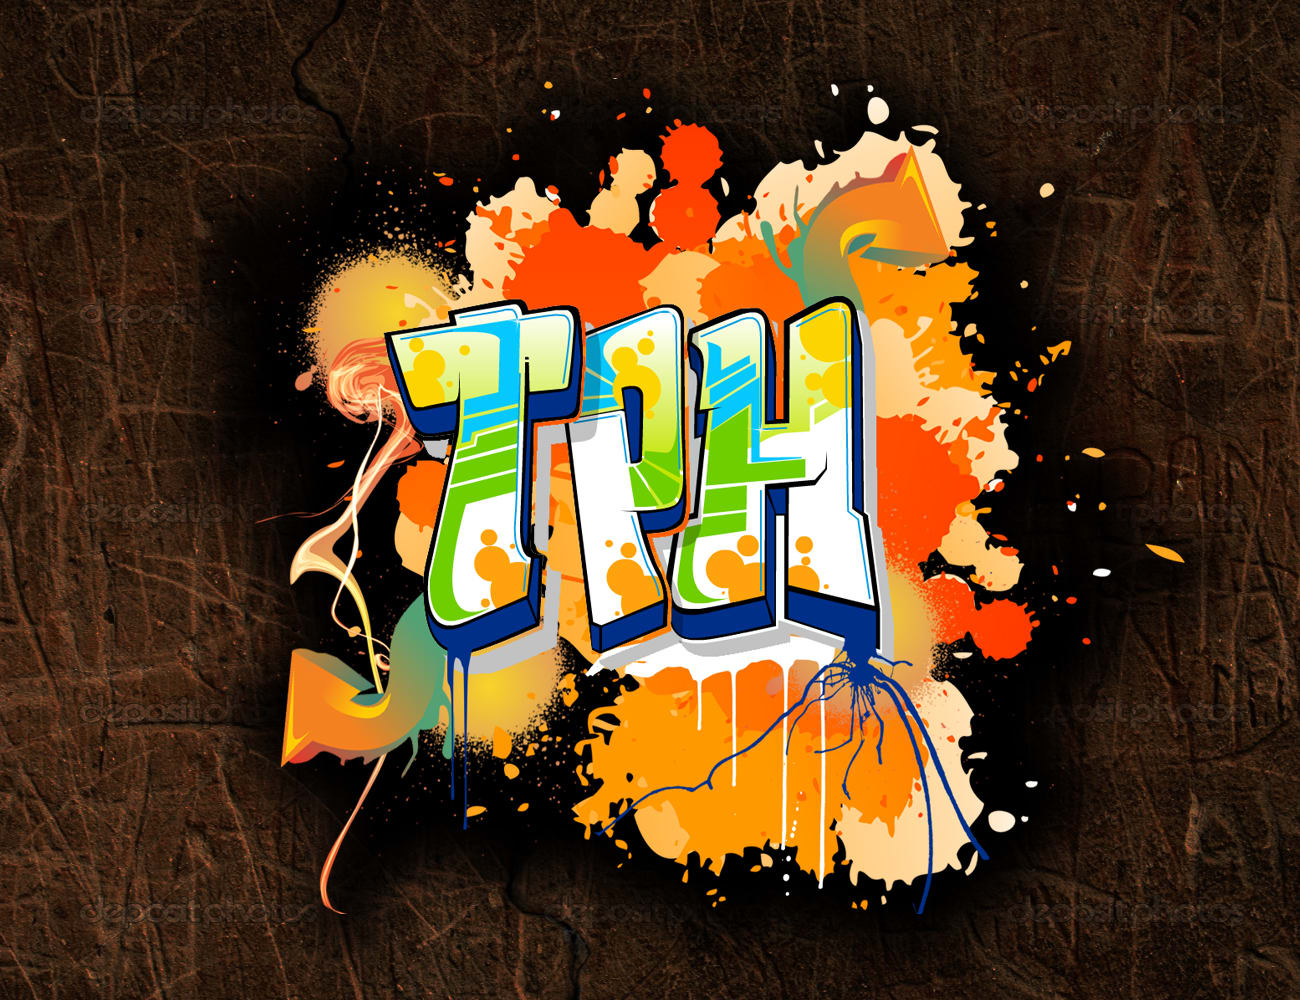 I will do graffiti fonts design in my own style